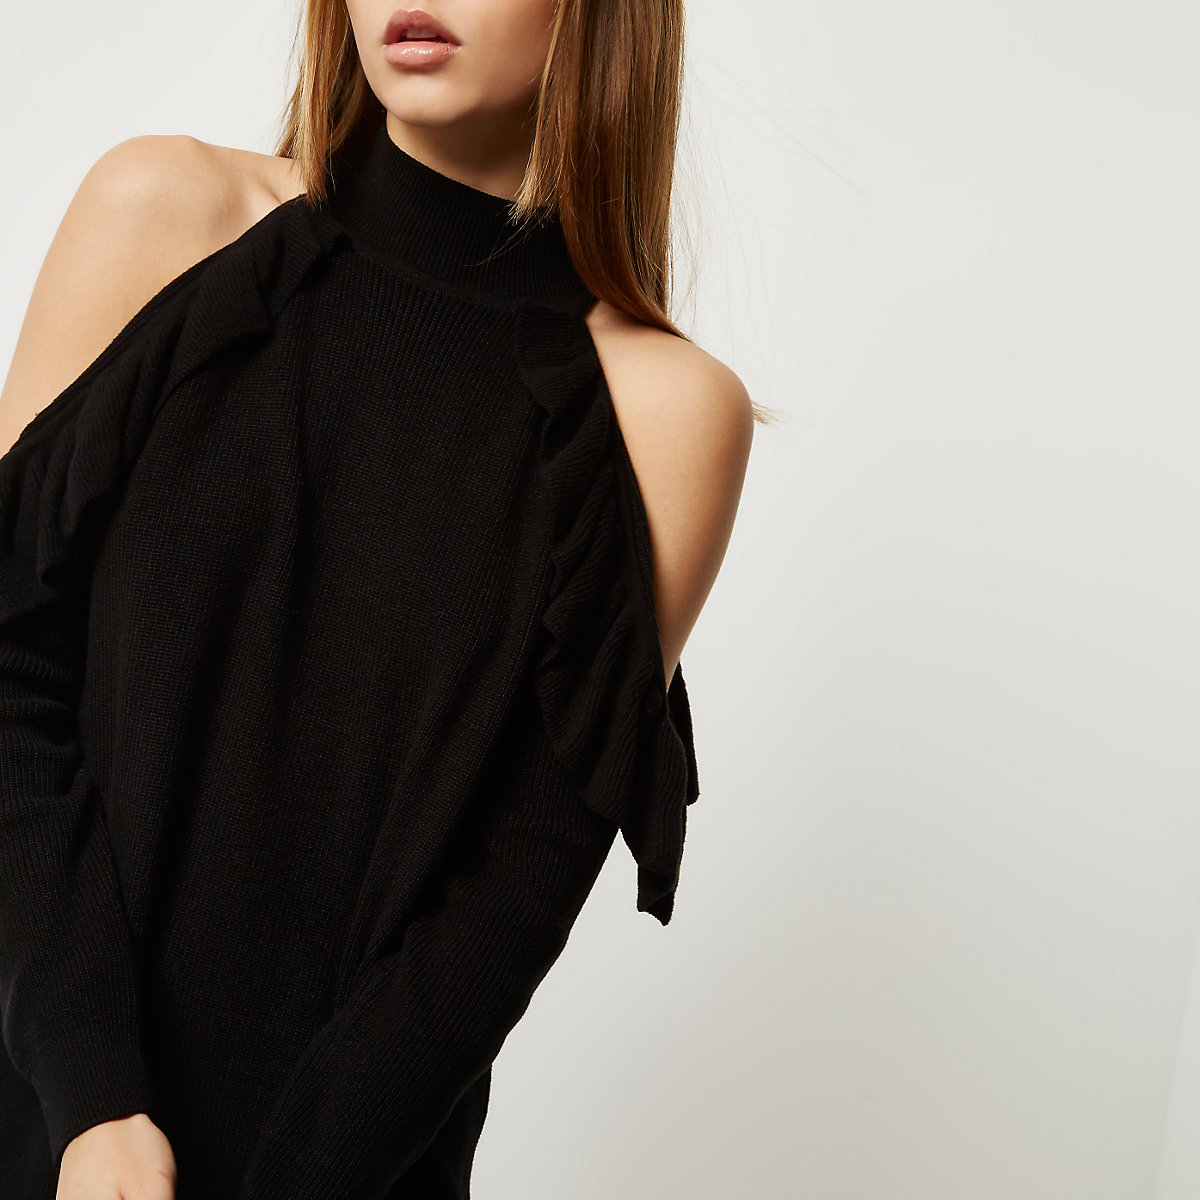 8c94f93af81 Black knit cold shoulder frill sweater dress - Dresses - Sale - women